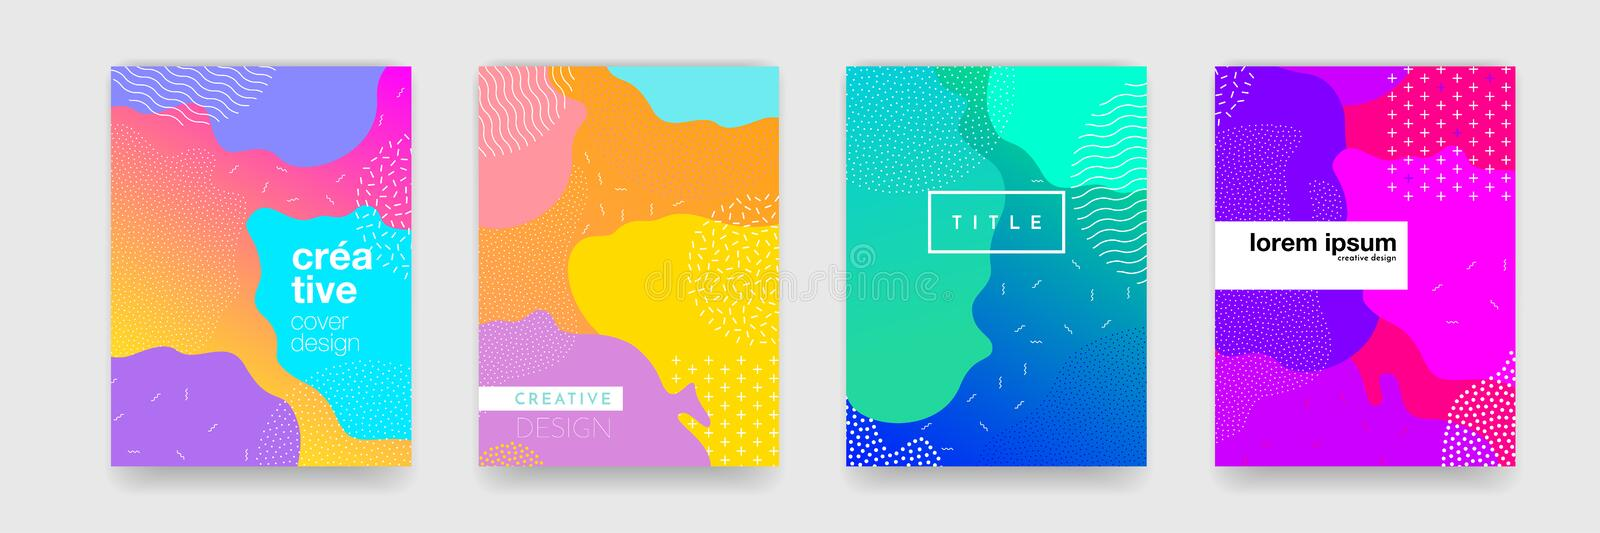 Abstract geometric pattern background texture for poster cover design. Minimal color gradient banner template. royalty free illustration